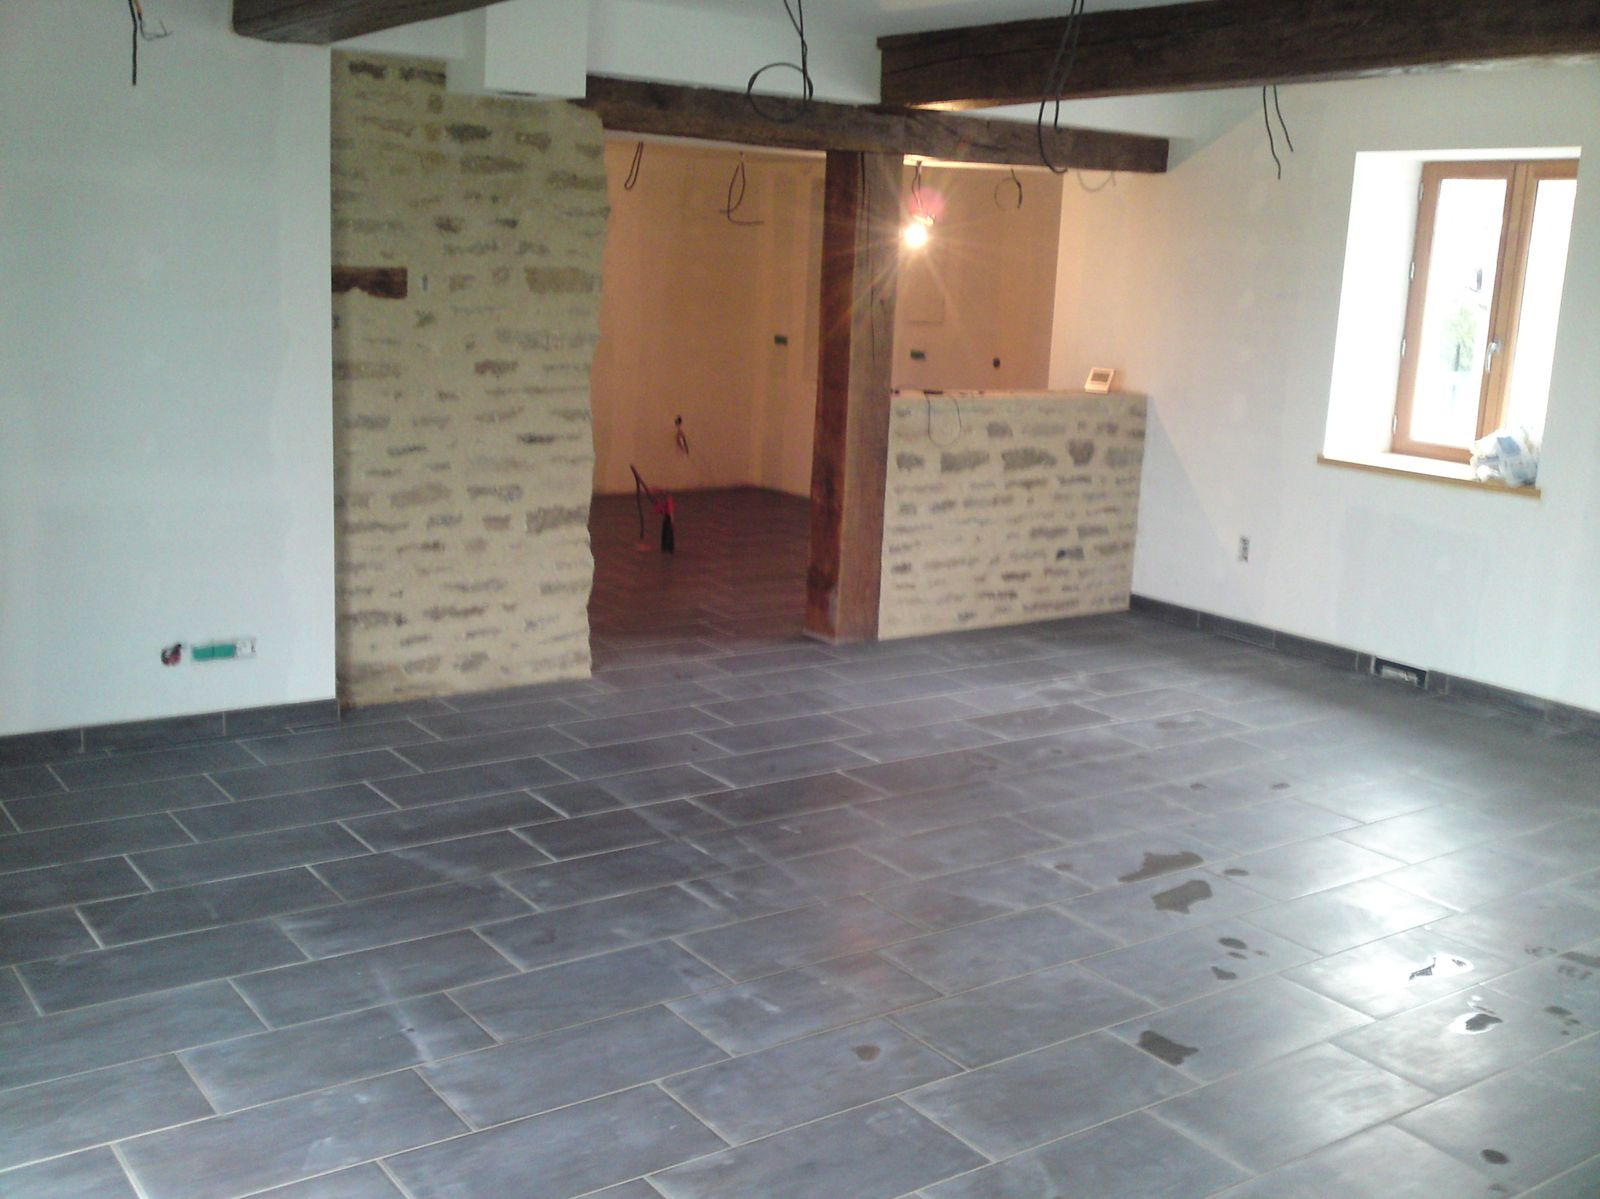 Joints de carrelage renovation d 39 une fermette en bourgogne for Image carrelage cuisine